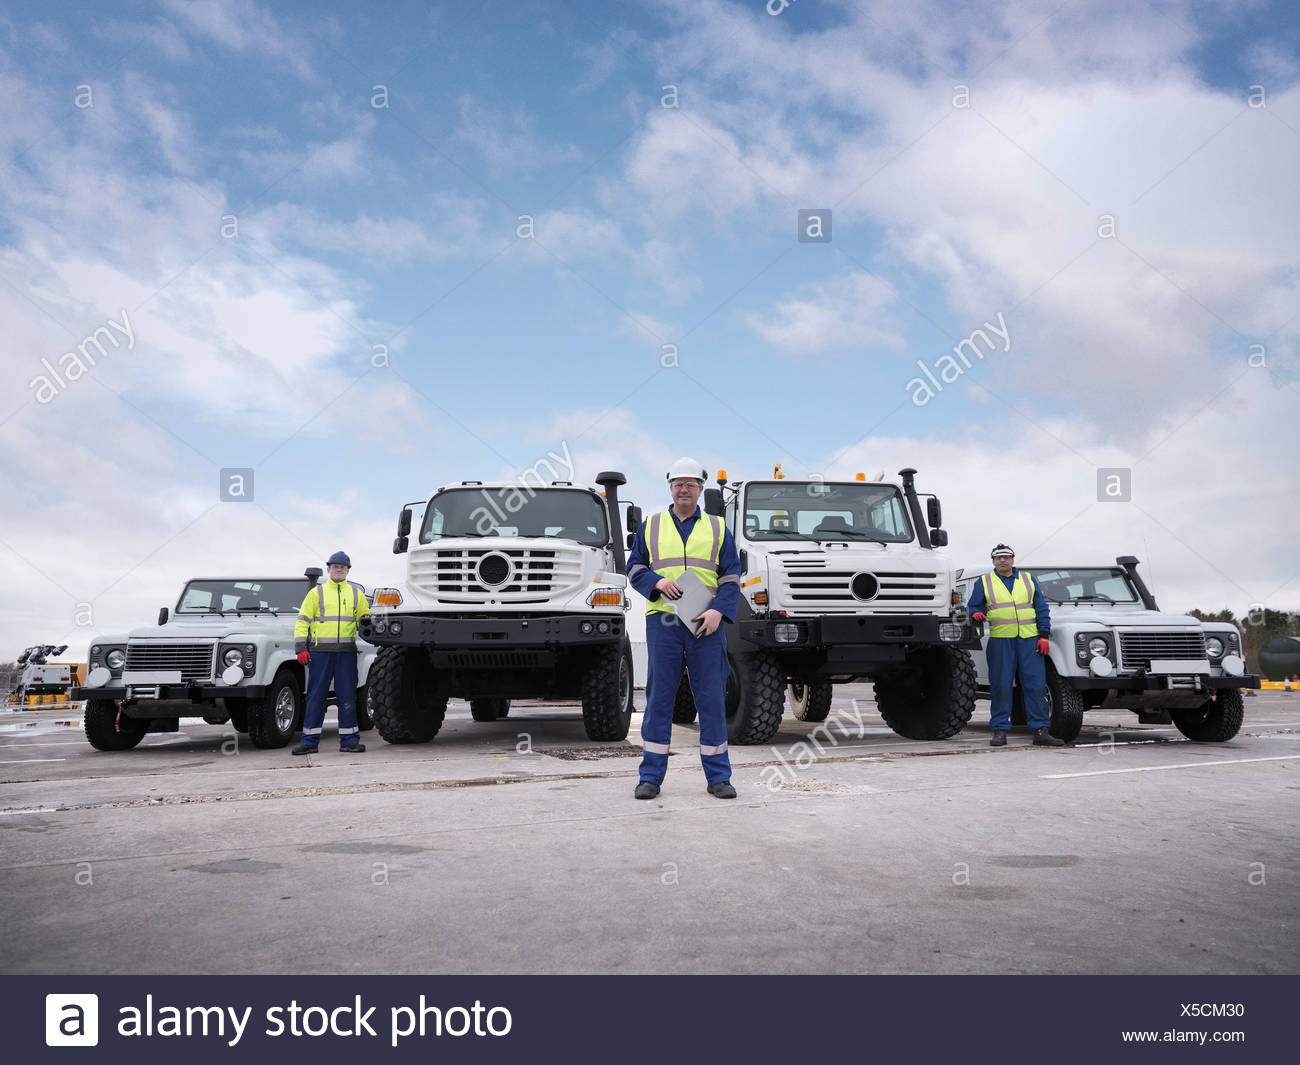 Portrait of Emergency Response Team workers with specialist trucks - Stock Image